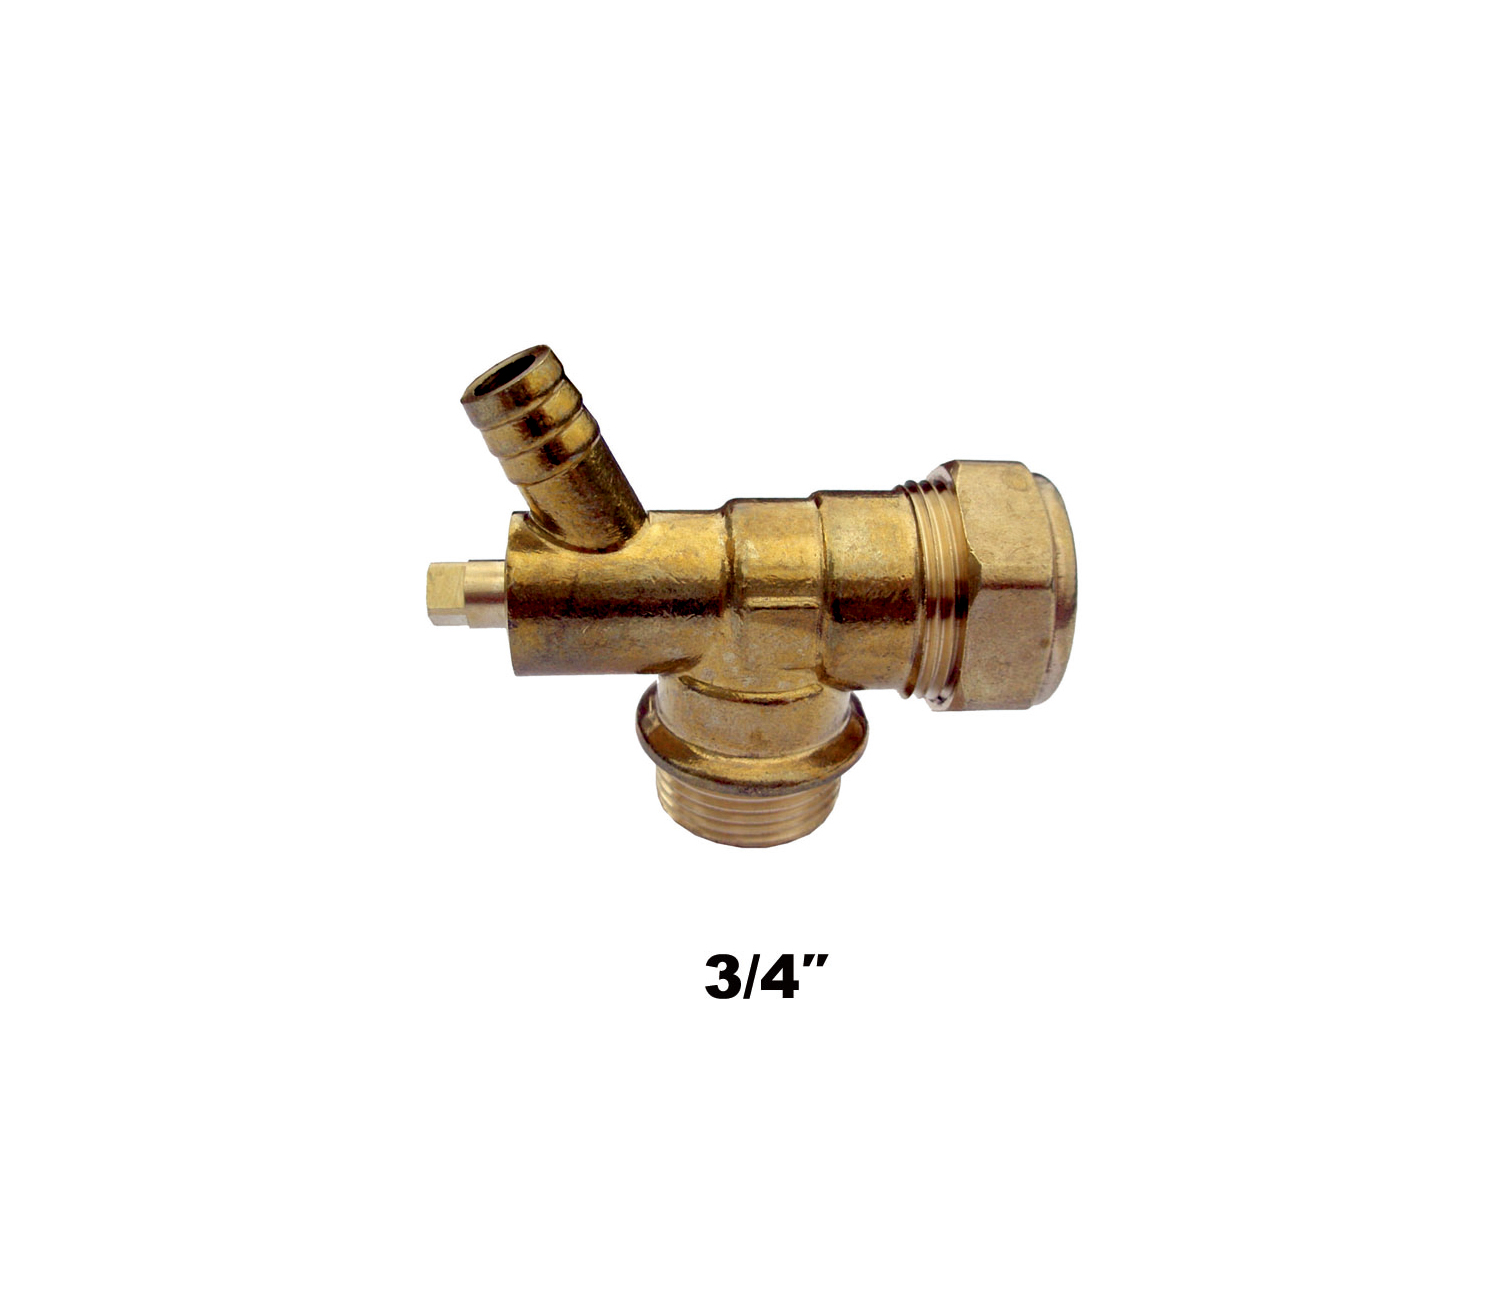 "Compression Male Elbow & Drain Off 3/4"" (8712)"